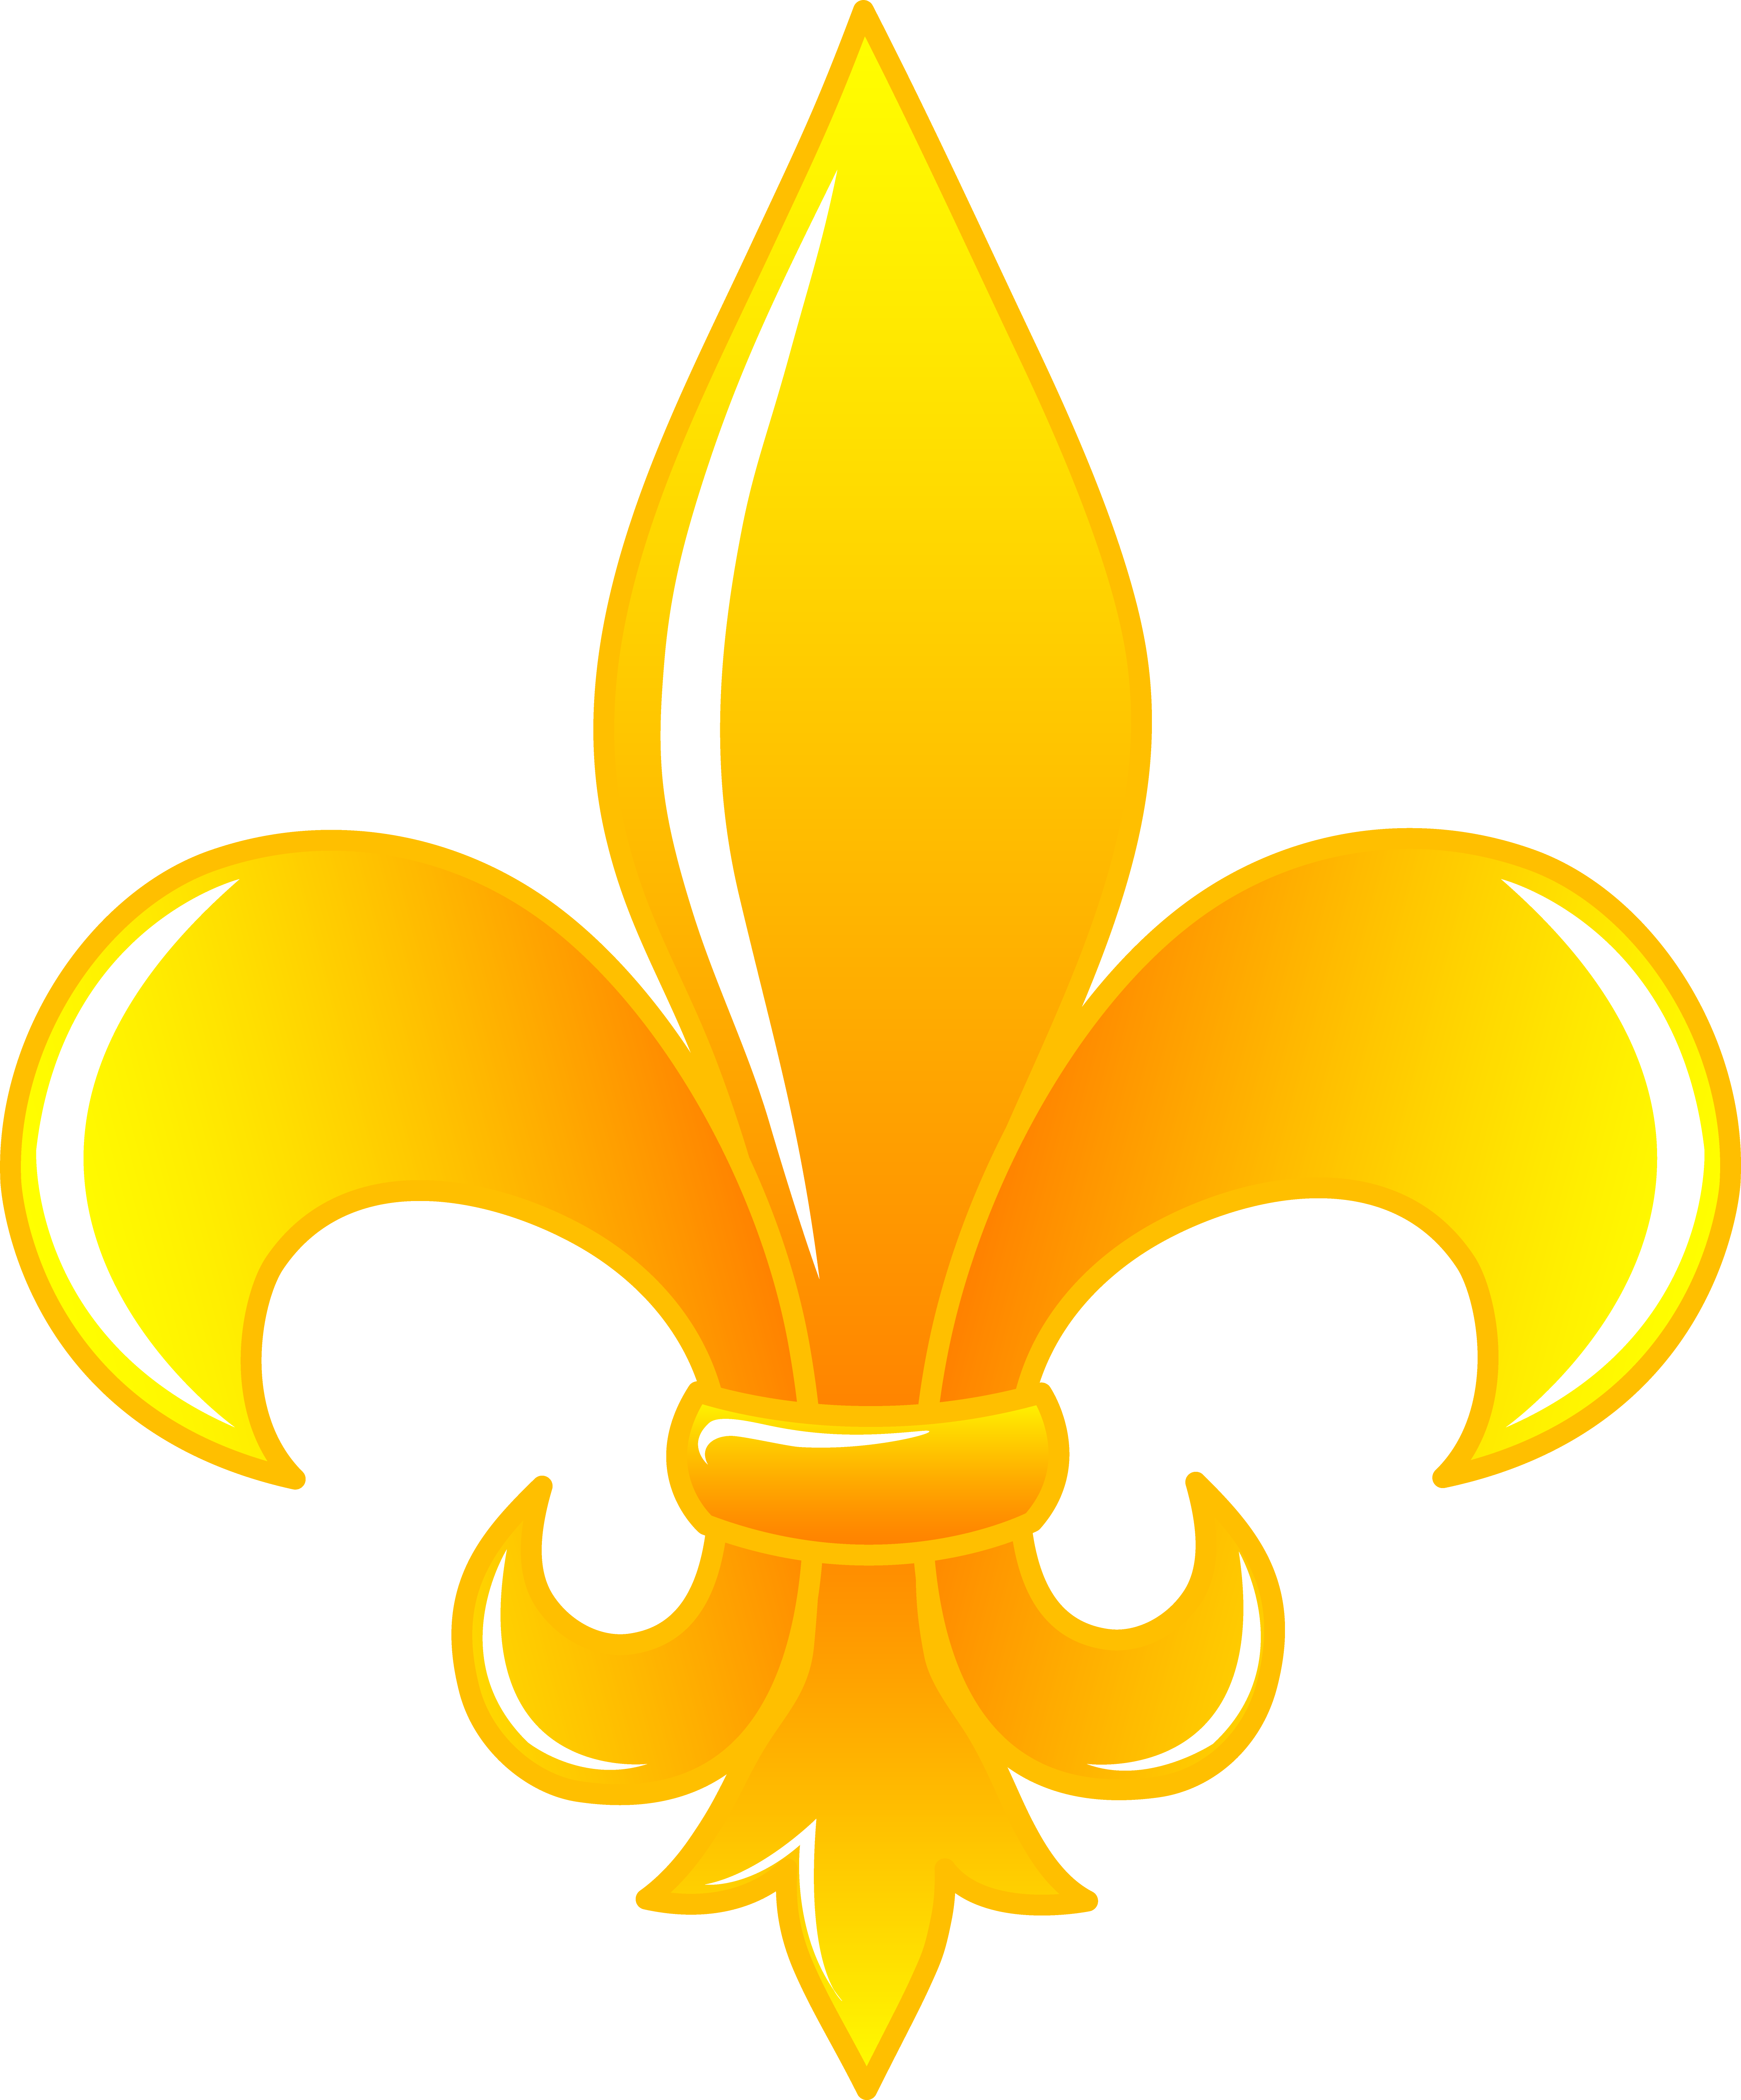 Fleur de lis crown clipart black and white vector stock painting+fleur+de+lis | Shiny Golden Fleur De Lis - Free Clip Art ... vector stock